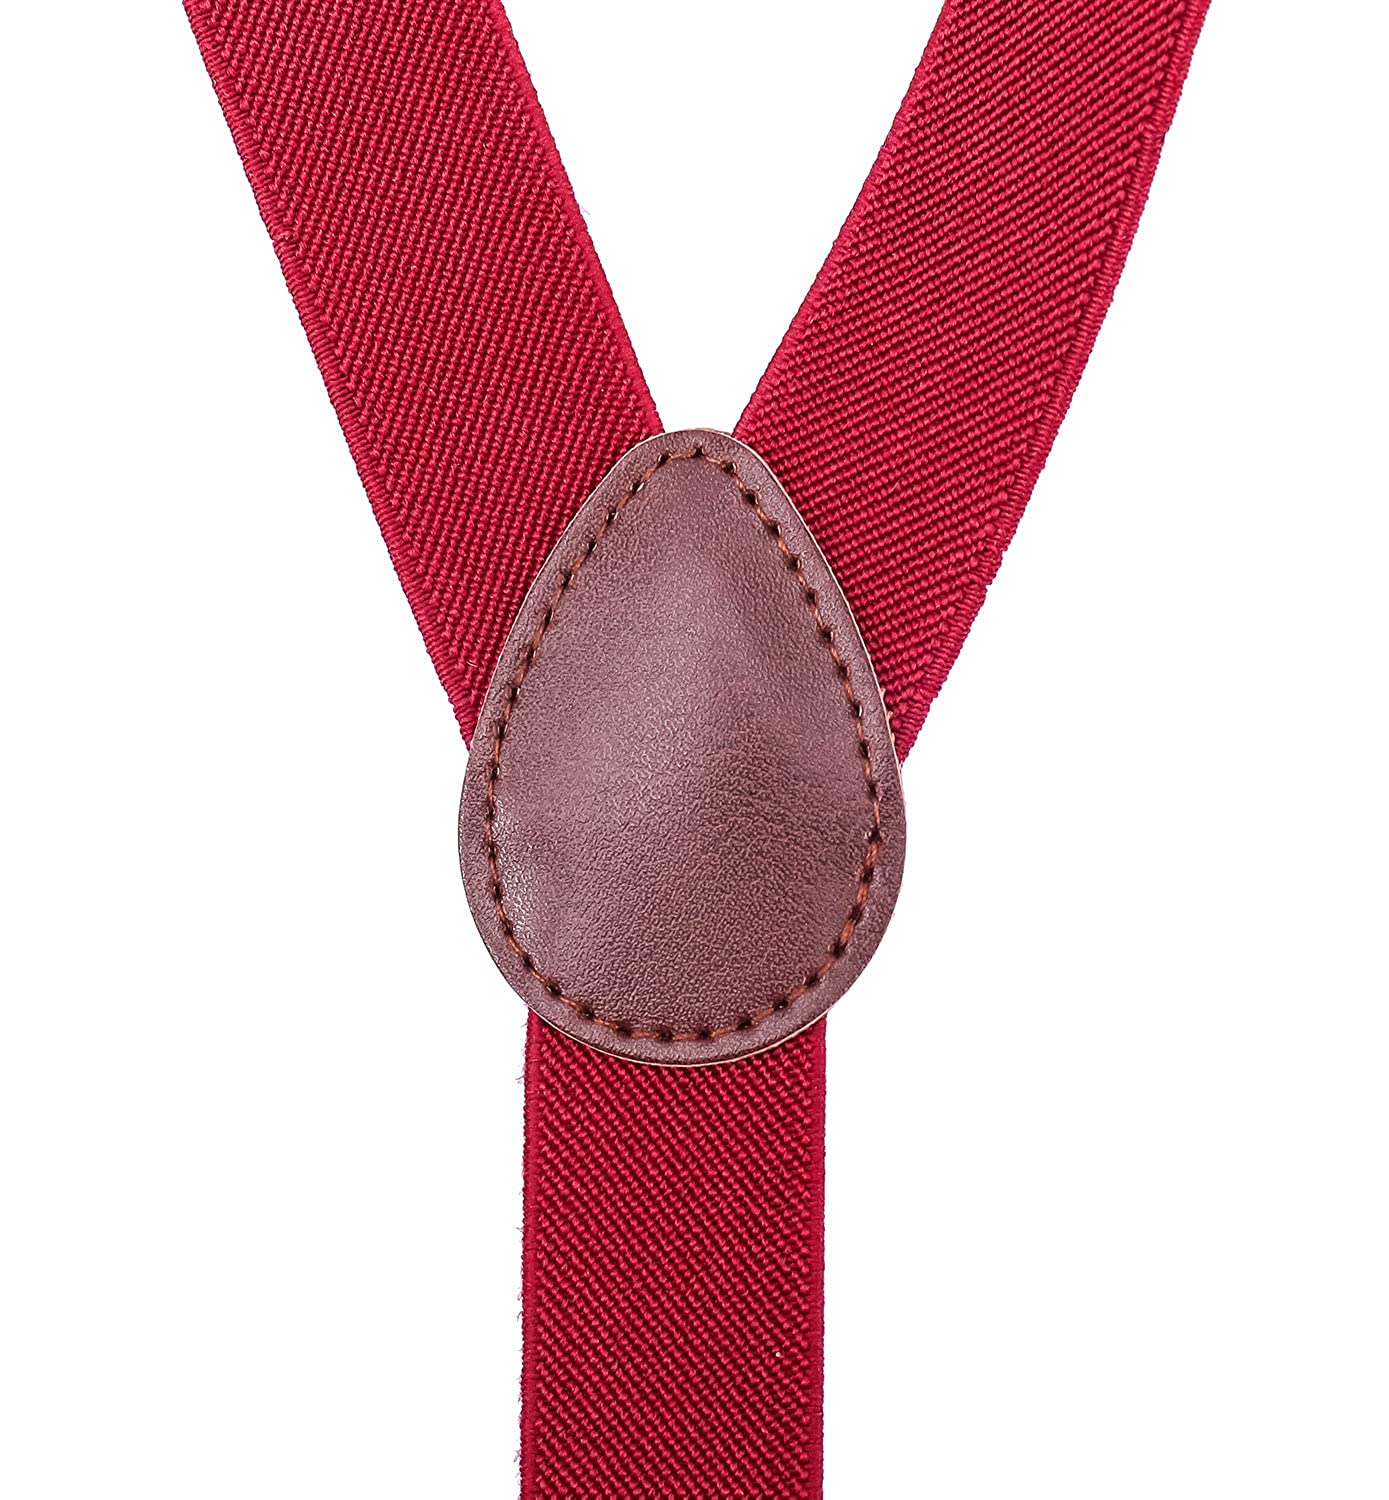 WDSKY Mens Kids Suspenders and Bow Tie Y Back Clip On